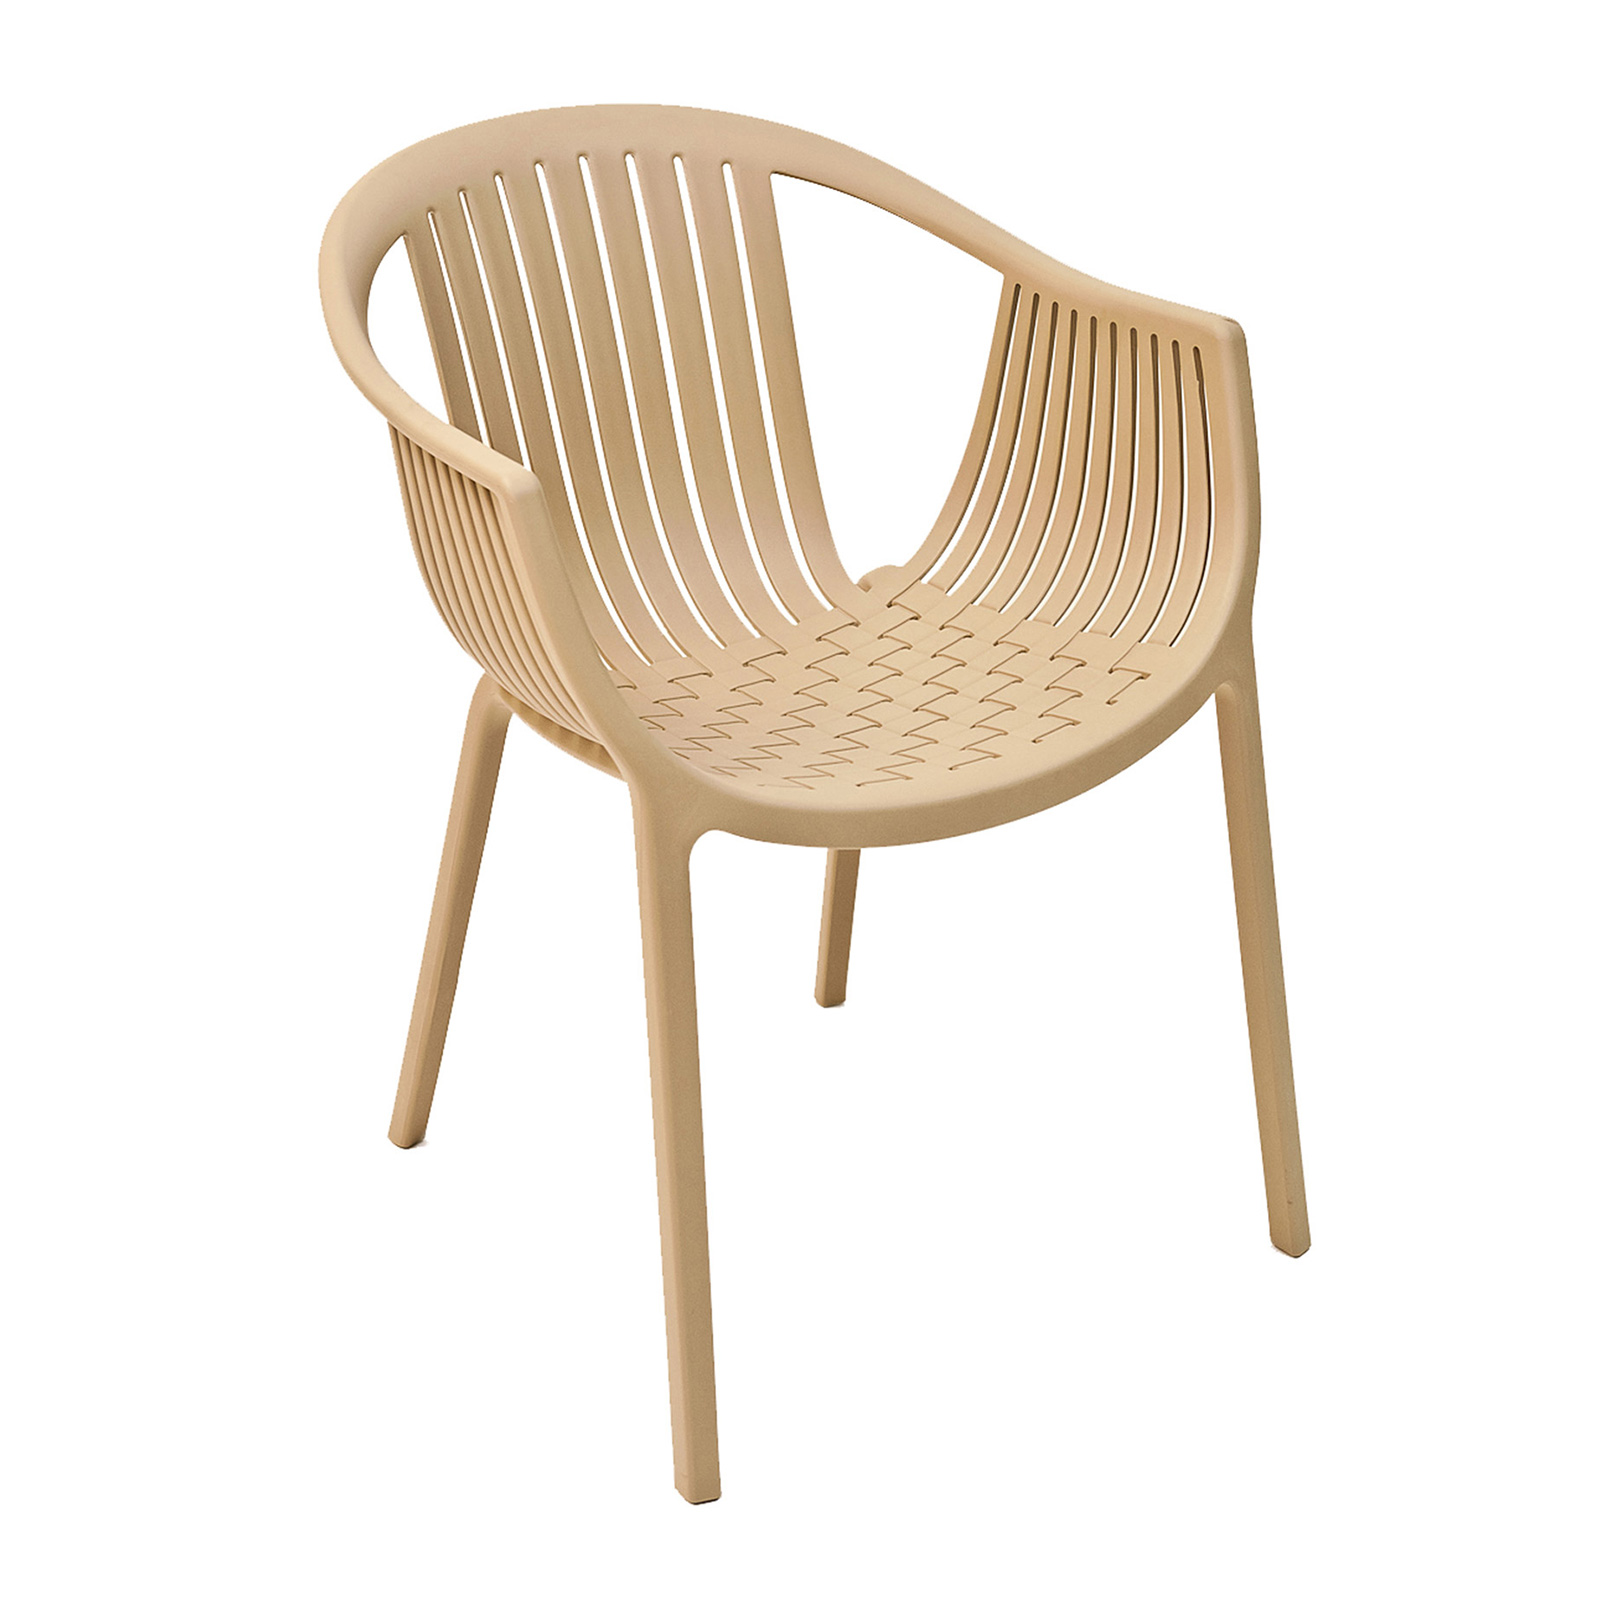 Florida Seating TATAMI/COCOA chair, armchair, stacking, outdoor